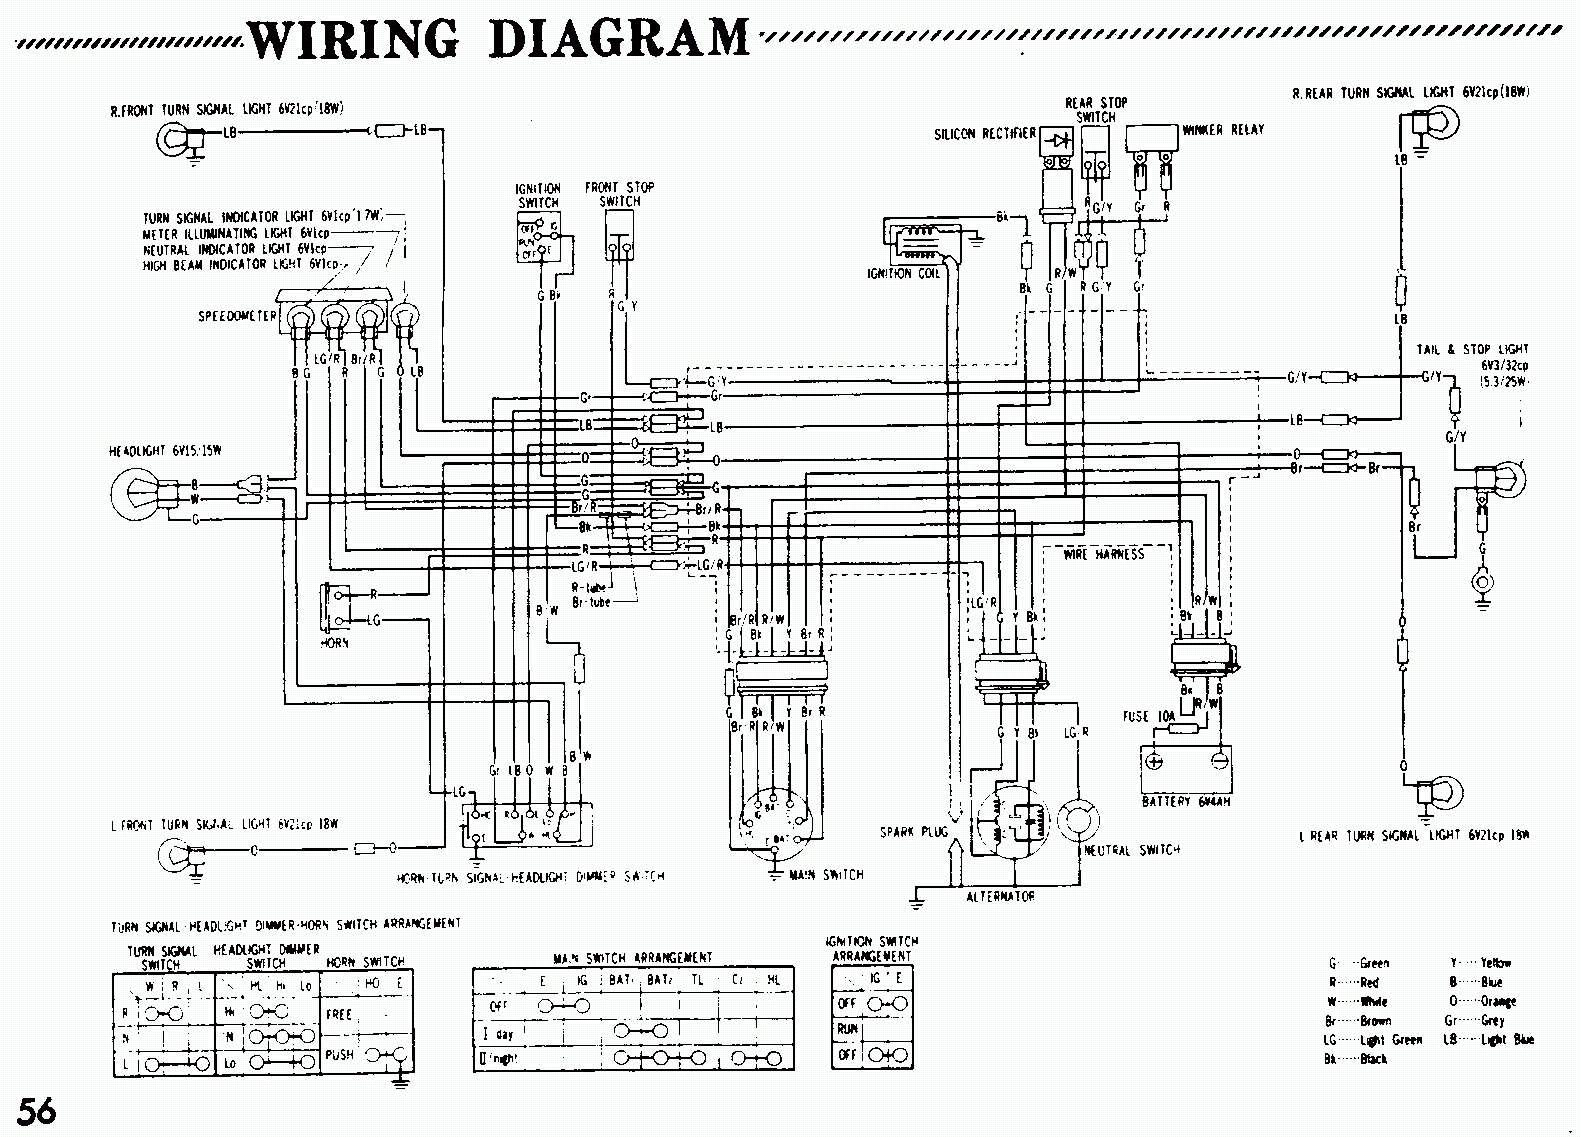 lifan 125 wiring install directions car wiring diagrams explained u2022 rh ethermag co